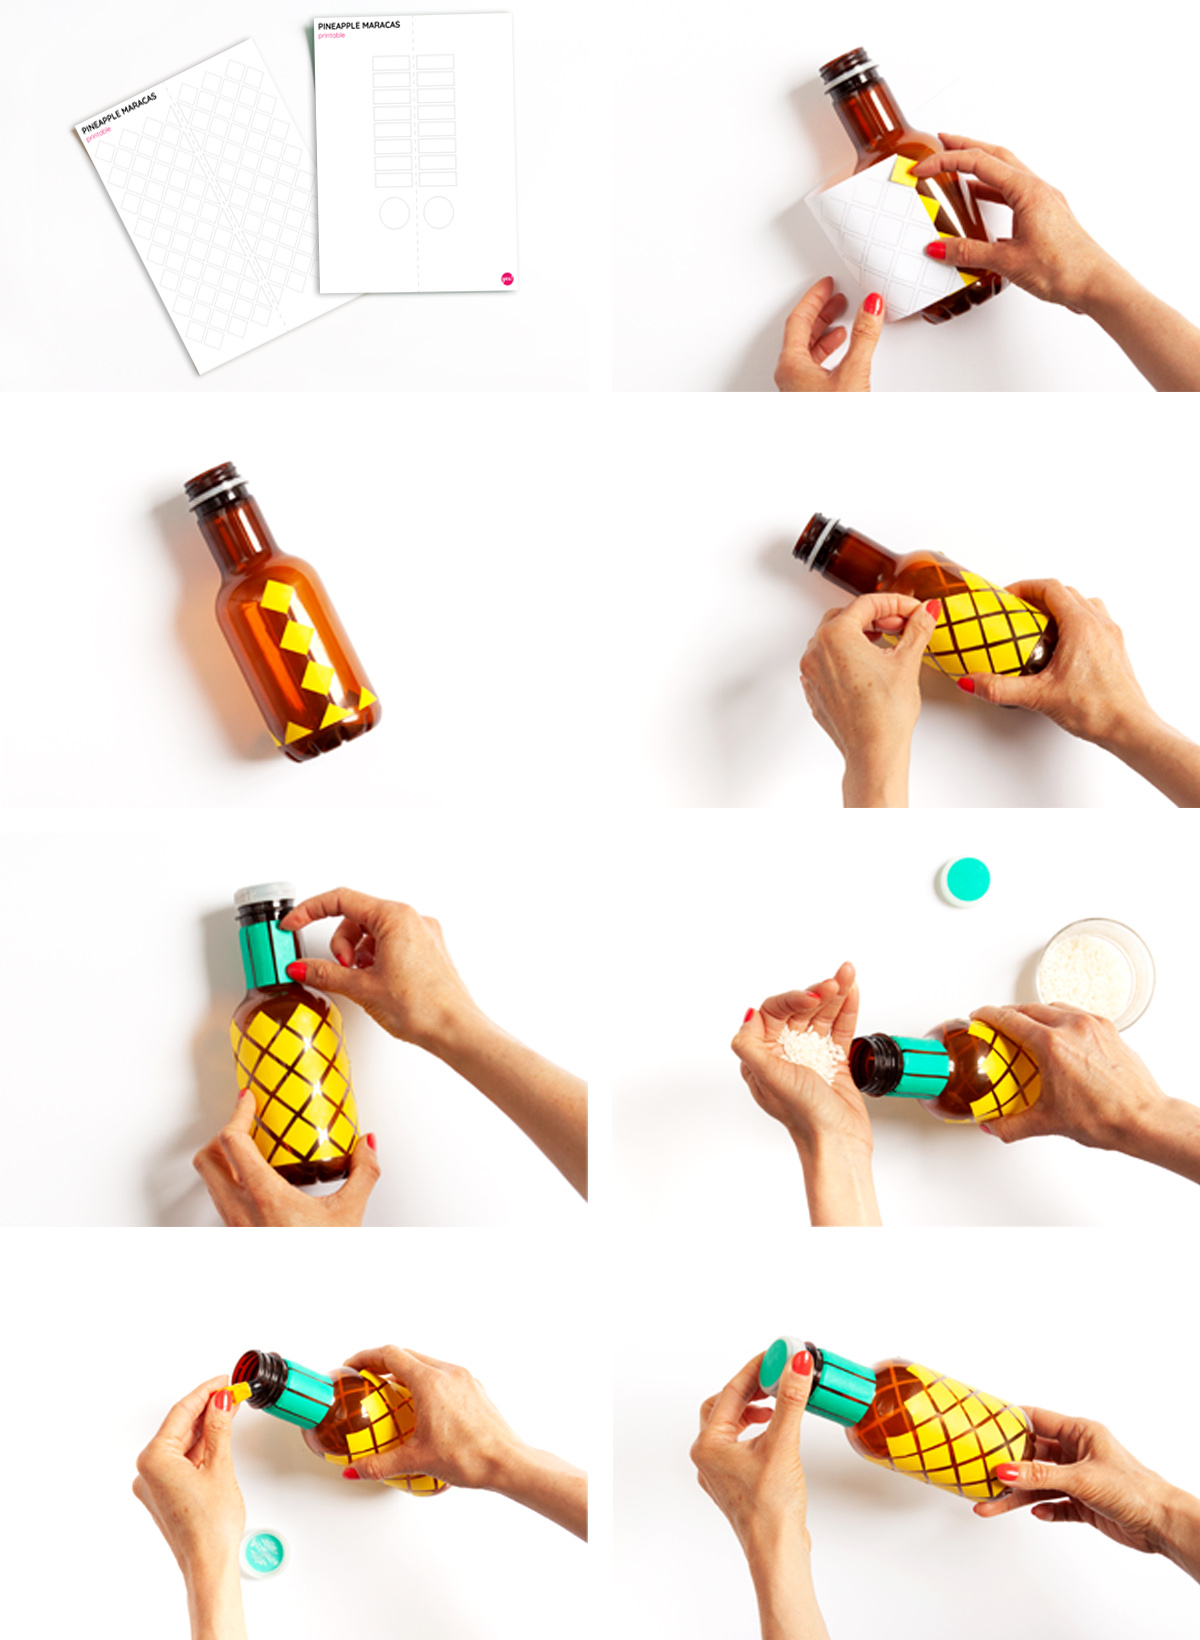 DIY Pineapple Maracas - Learn how to make these fun maracas out of plastic bottles. - www.yeswemadethis.com